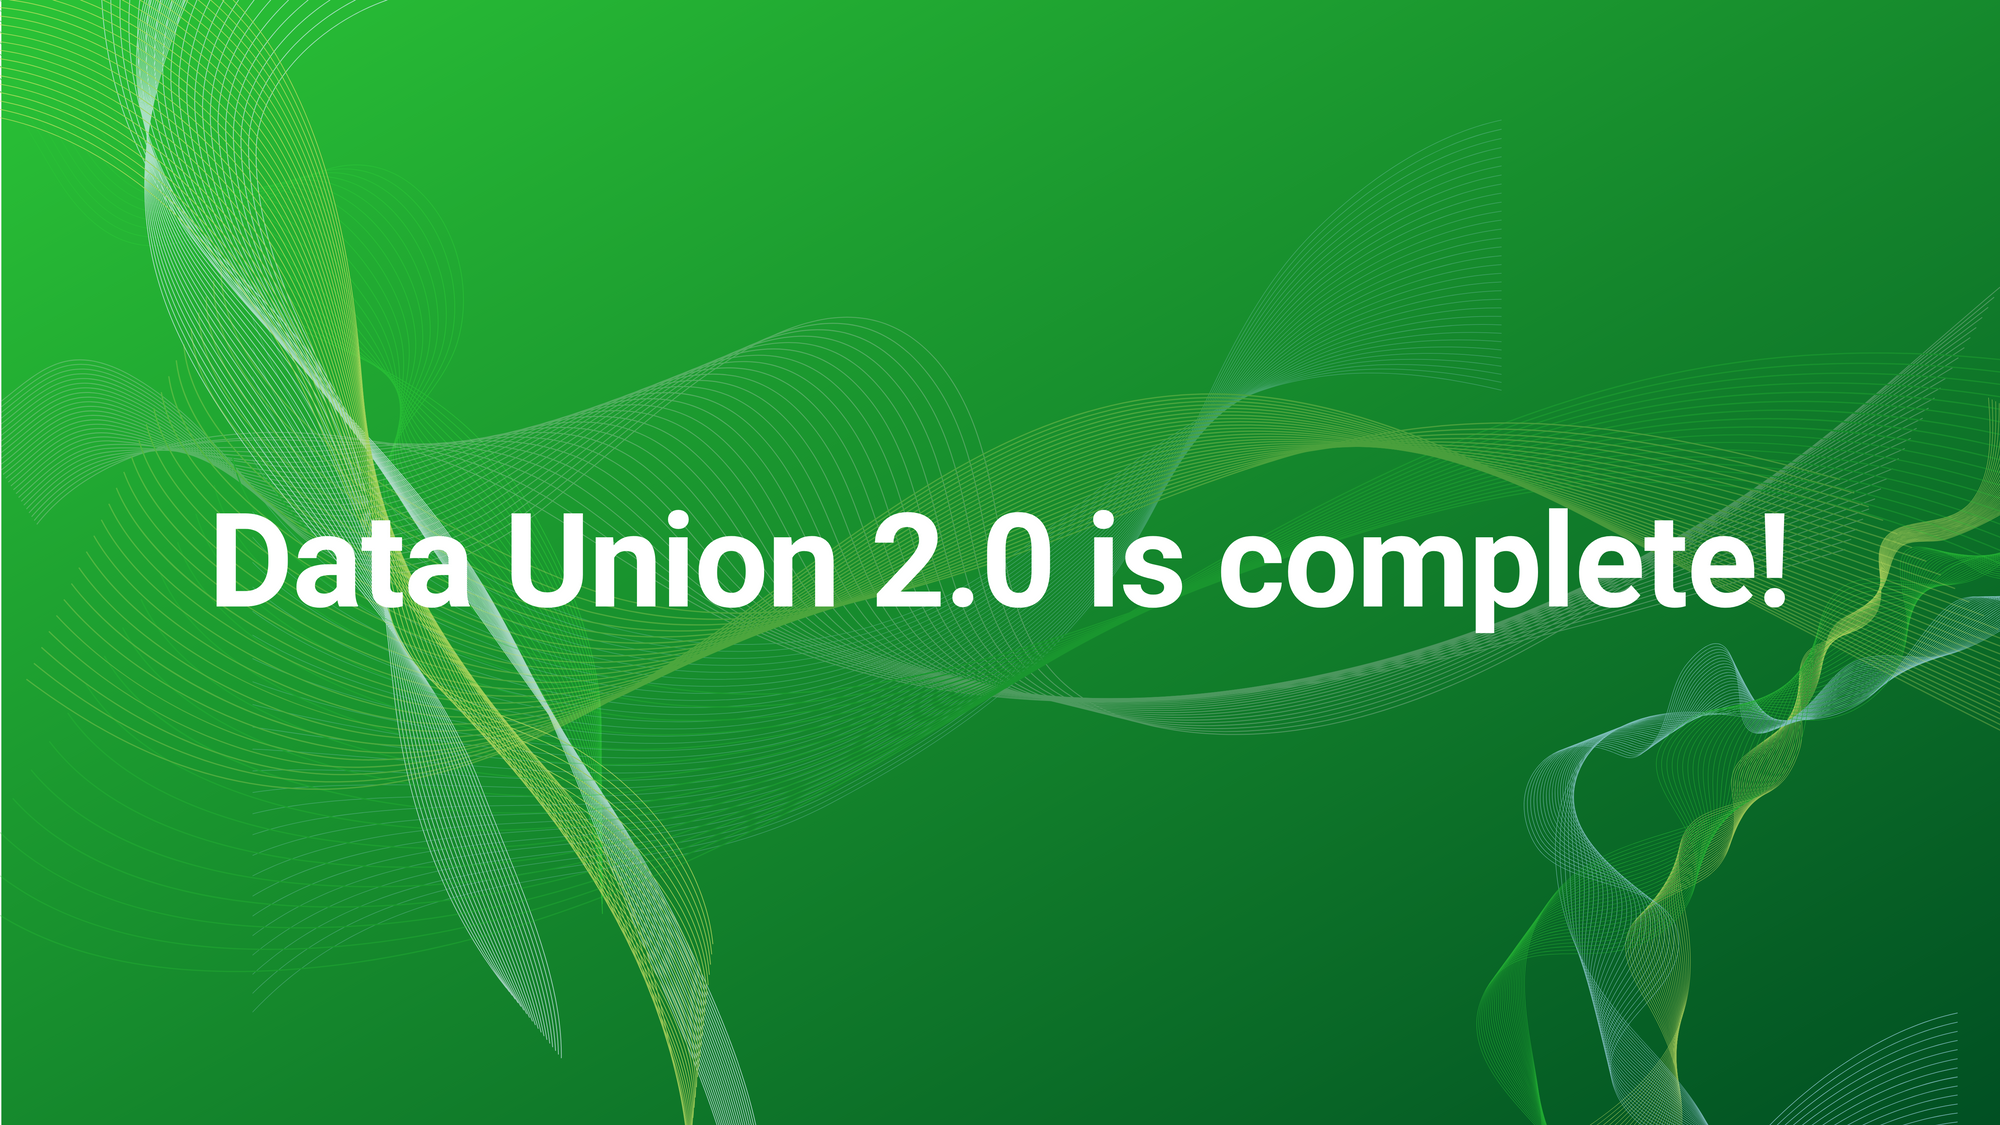 Text reads 'Data Union 2.0 is complete!' on a green background with wave patterns